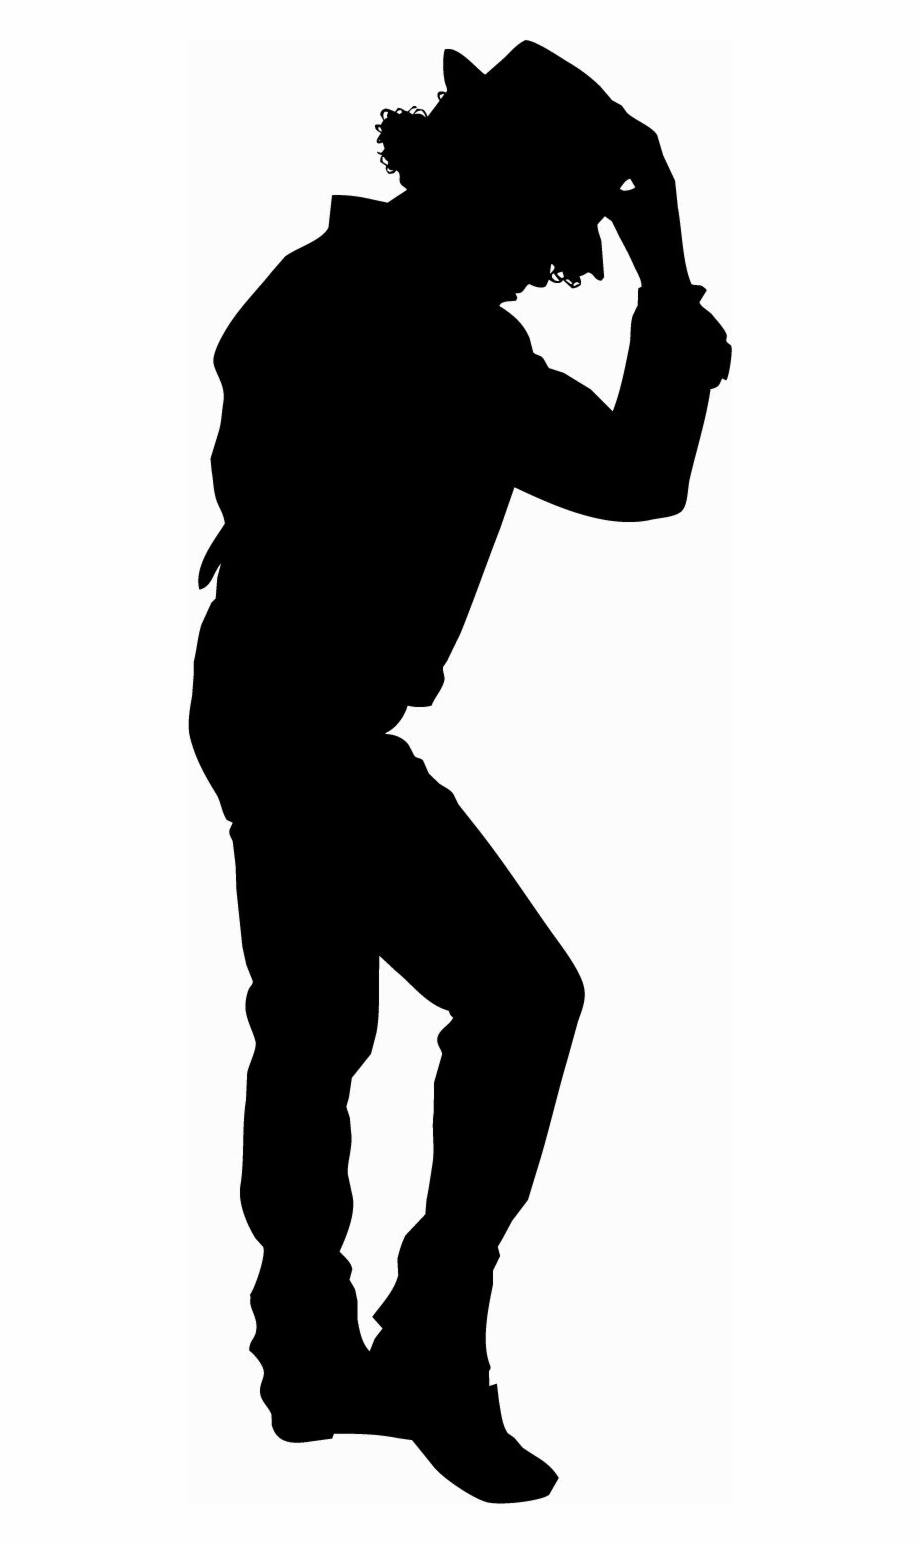 Michael Jackson Moonwalk Png Image Background - Michael ... graphic library download